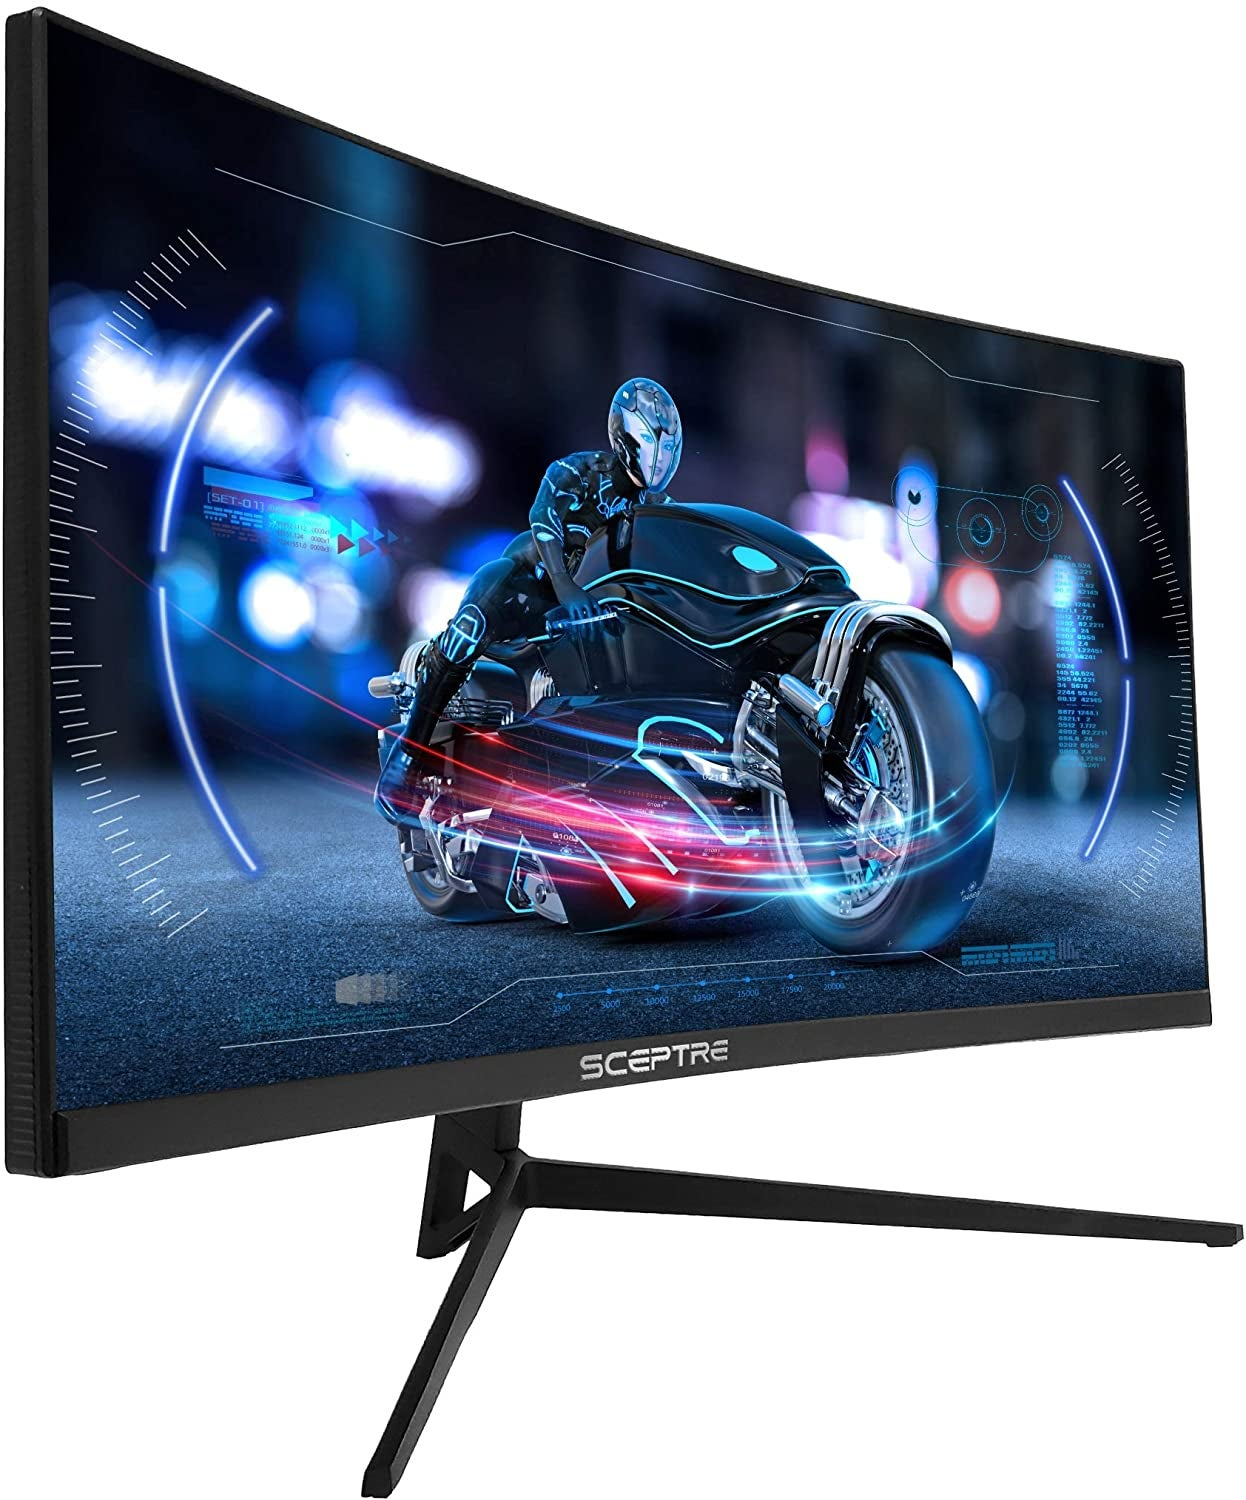 the curved monitor